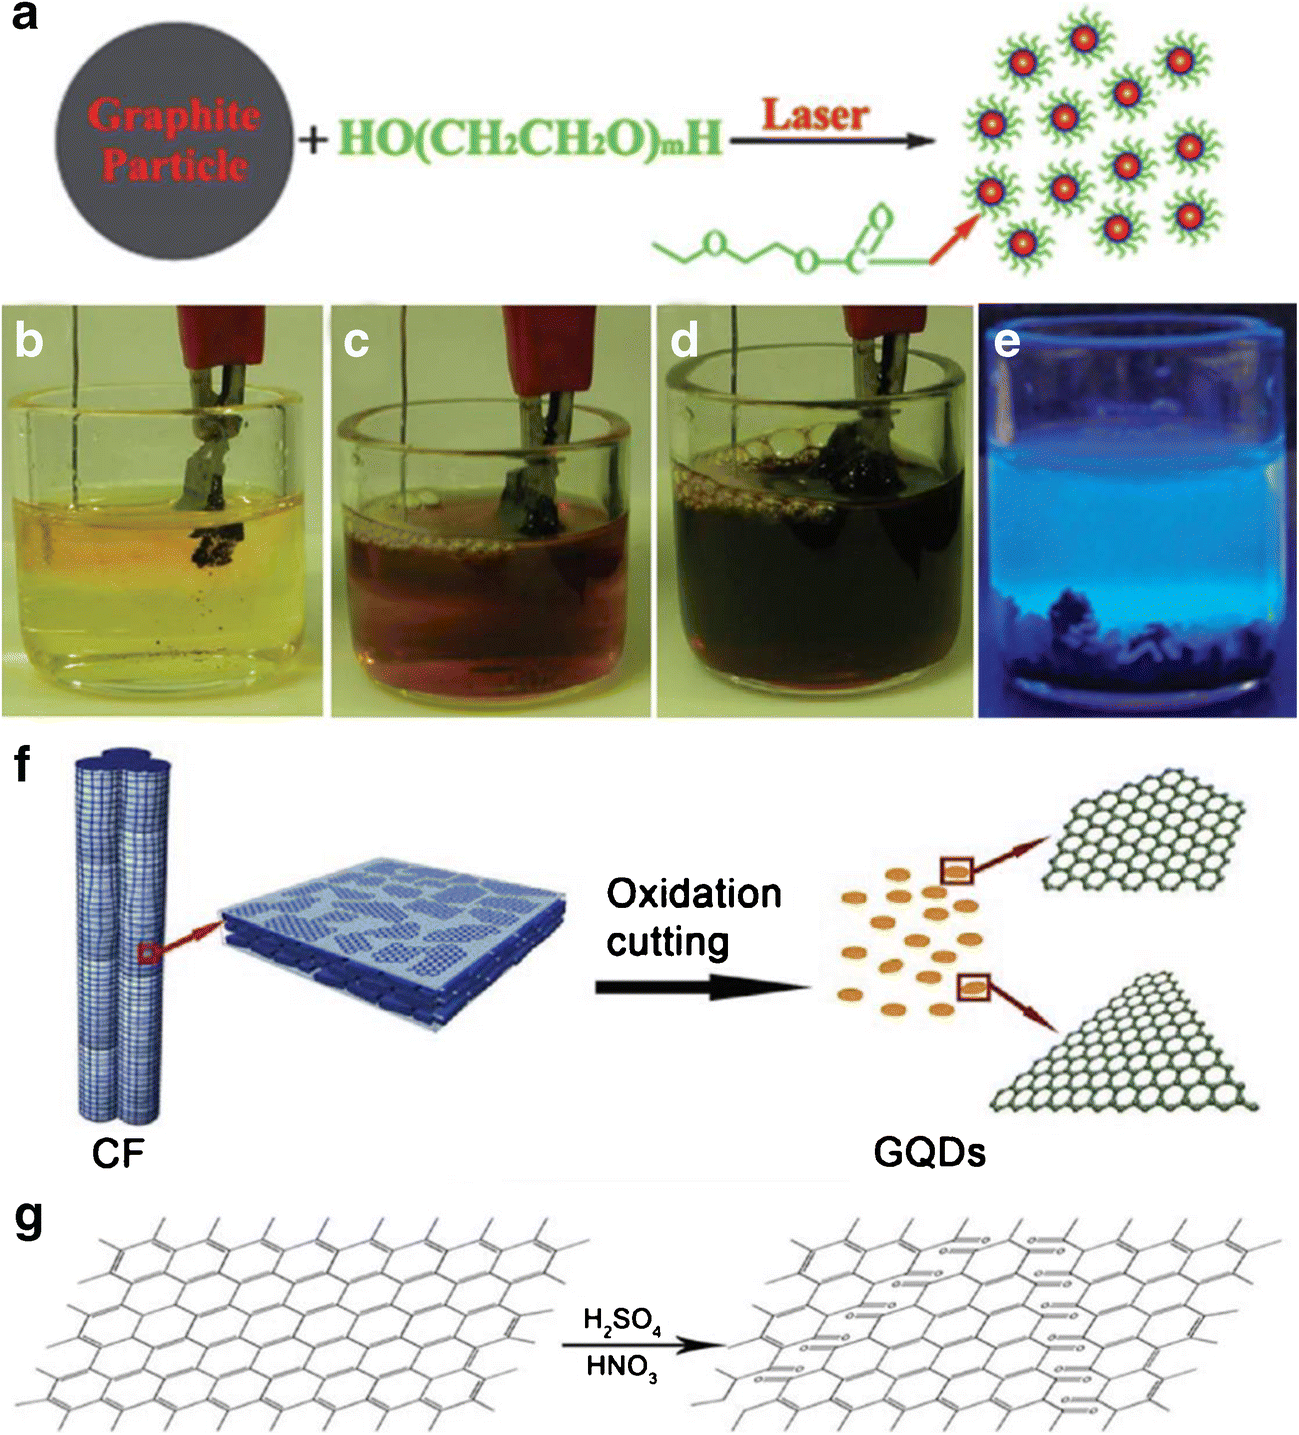 Optical, electrochemical and catalytic methods for in-vitro